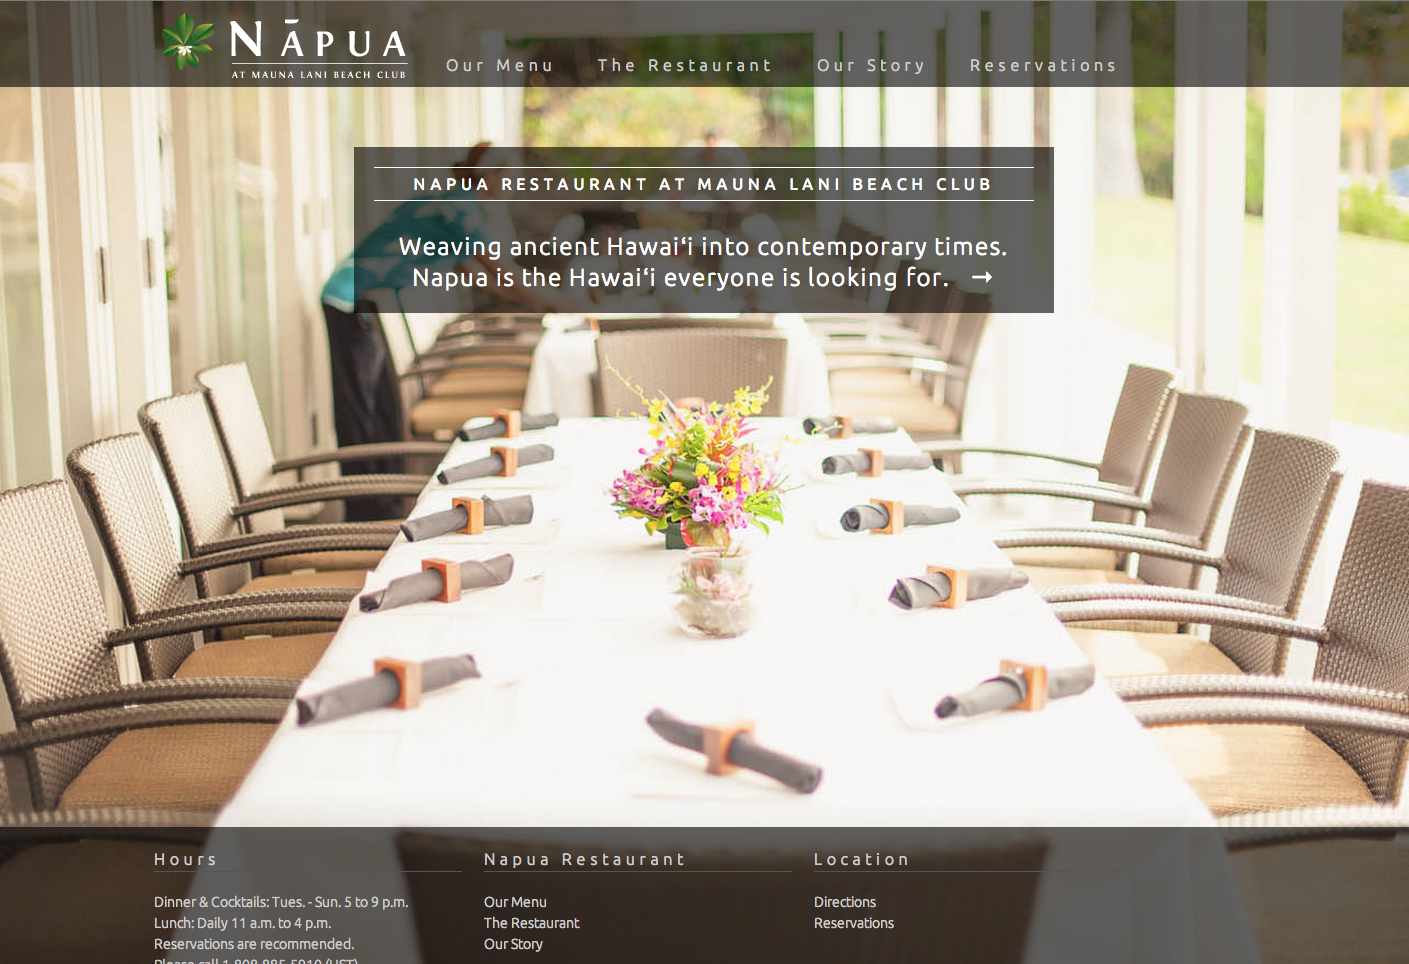 Napua Restaurant At Mauna Lani Resort